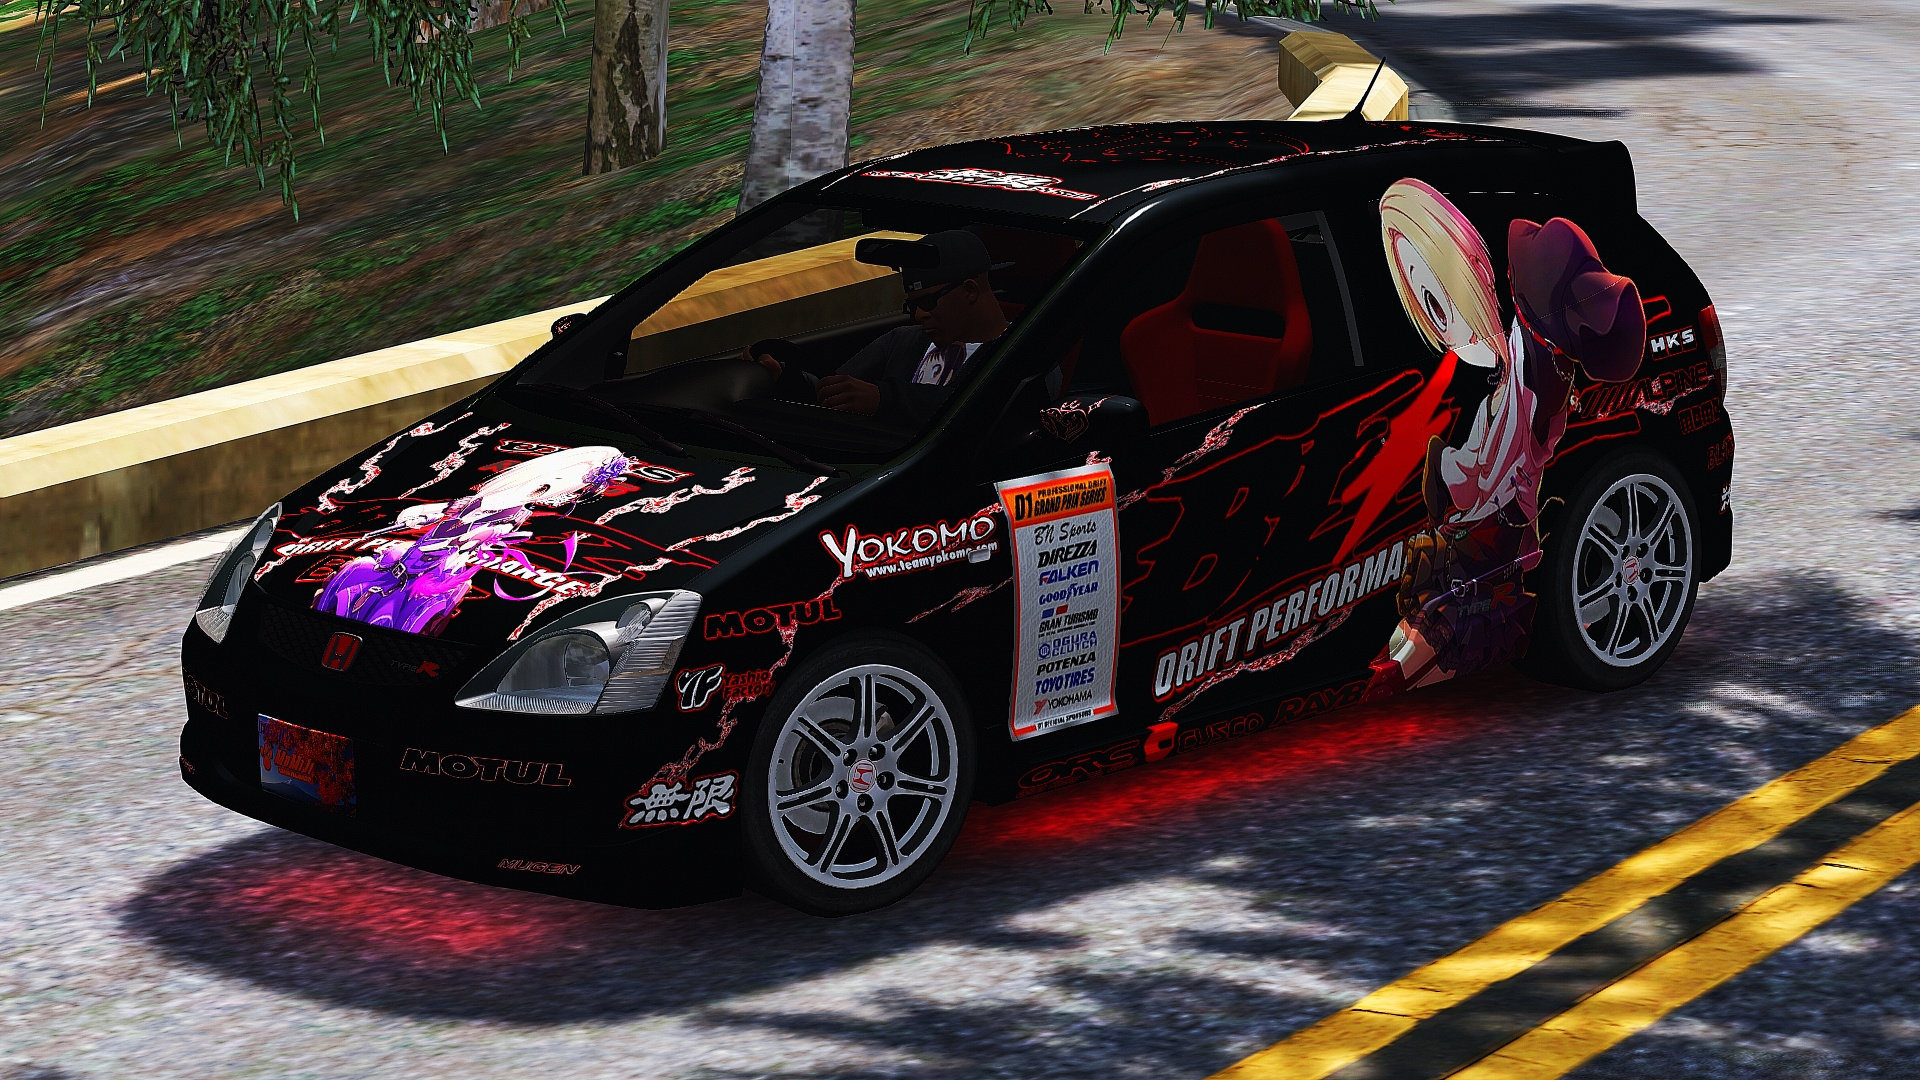 2004 honda civic type r ep3 itasha livery gta5. Black Bedroom Furniture Sets. Home Design Ideas